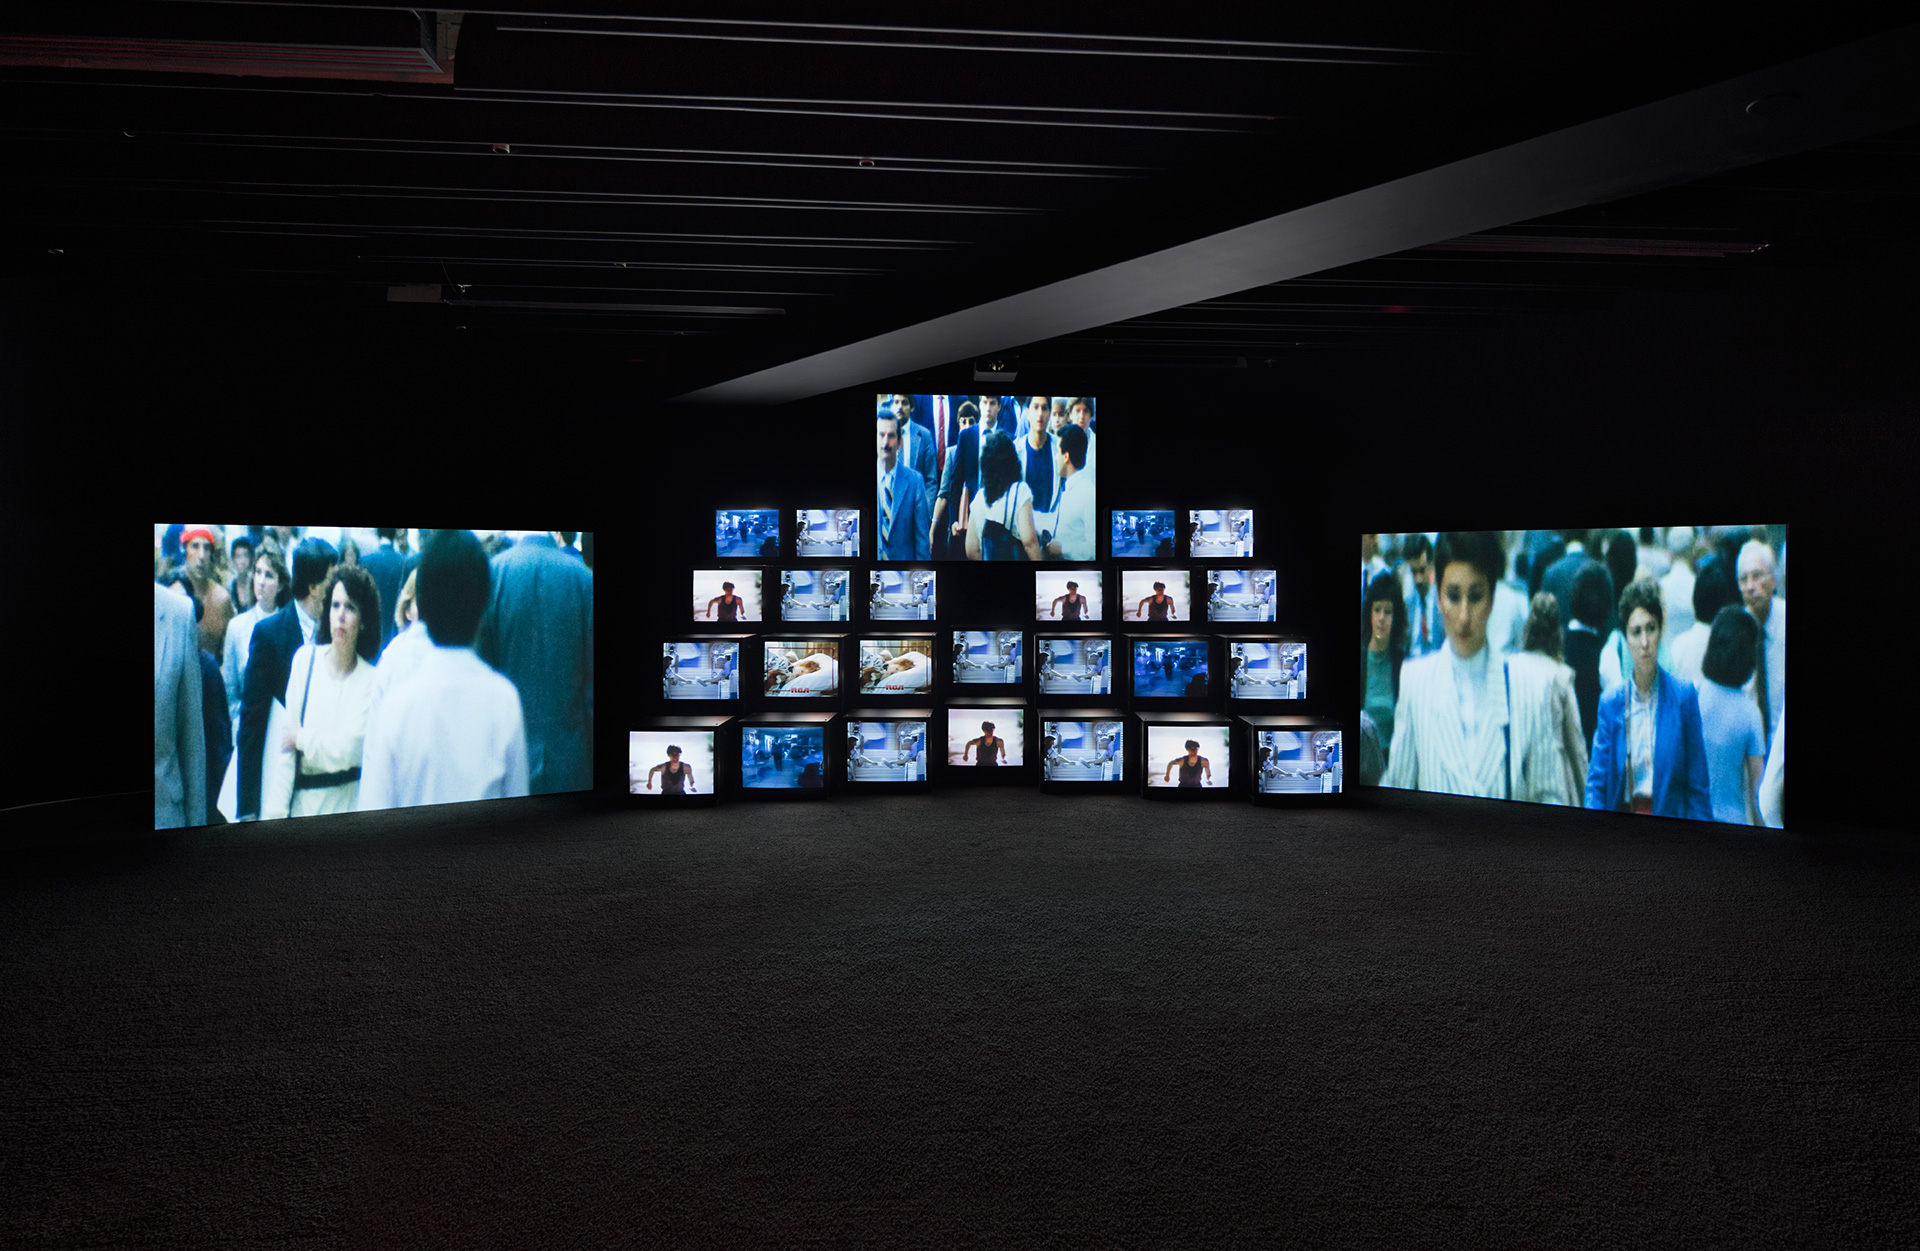 Total Recall, 1987. 11-channel video installation on 24 monitors and 3 projection screens, 18.2 min, with soundtrack by Stuart Argabright. Installation view of Gretchen Bender: So Much Deathless at Red Bull Arts New York, 2019 | Gretchen Bender | STIR